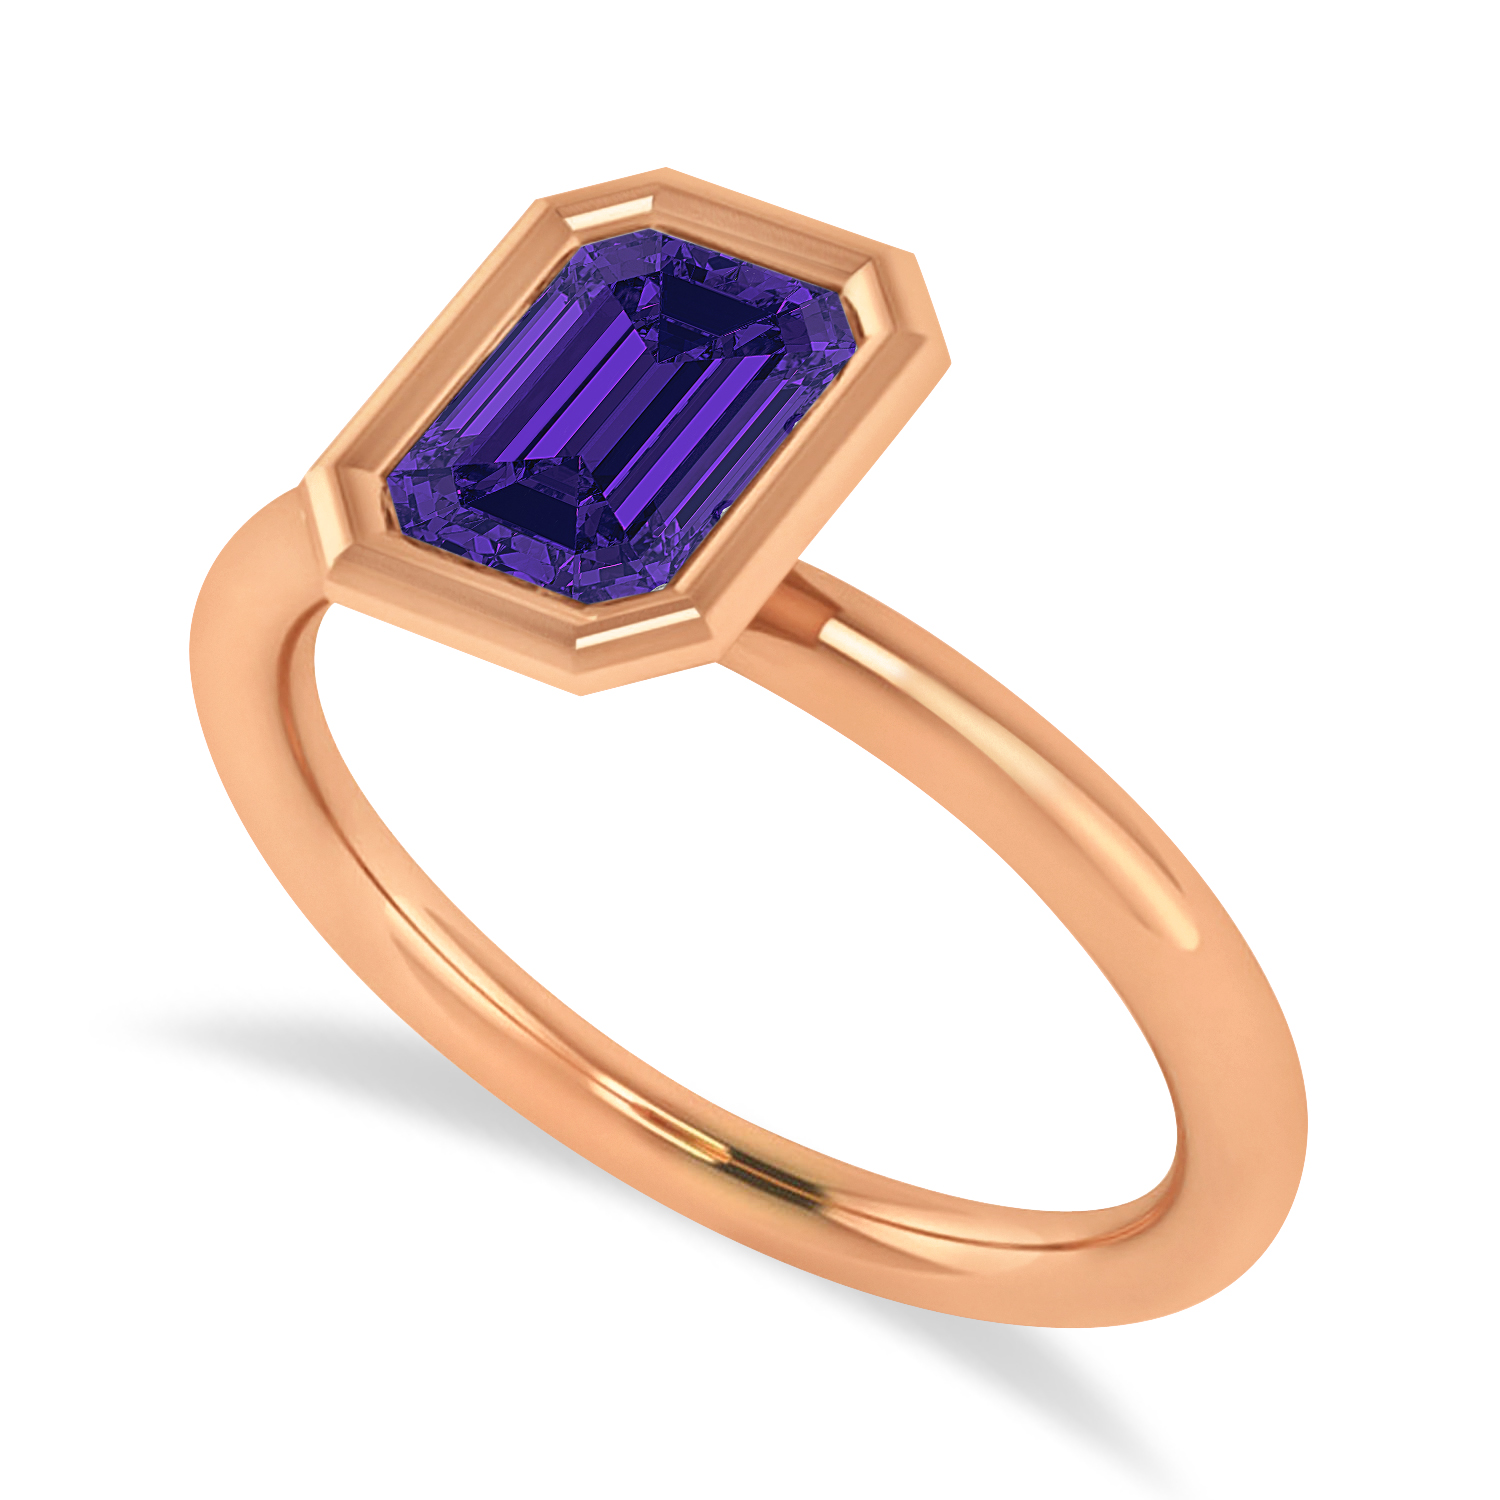 Emerald-Cut Bezel-Set Tanzanite Solitaire Ring 14k Rose Gold (1.00 ctw)